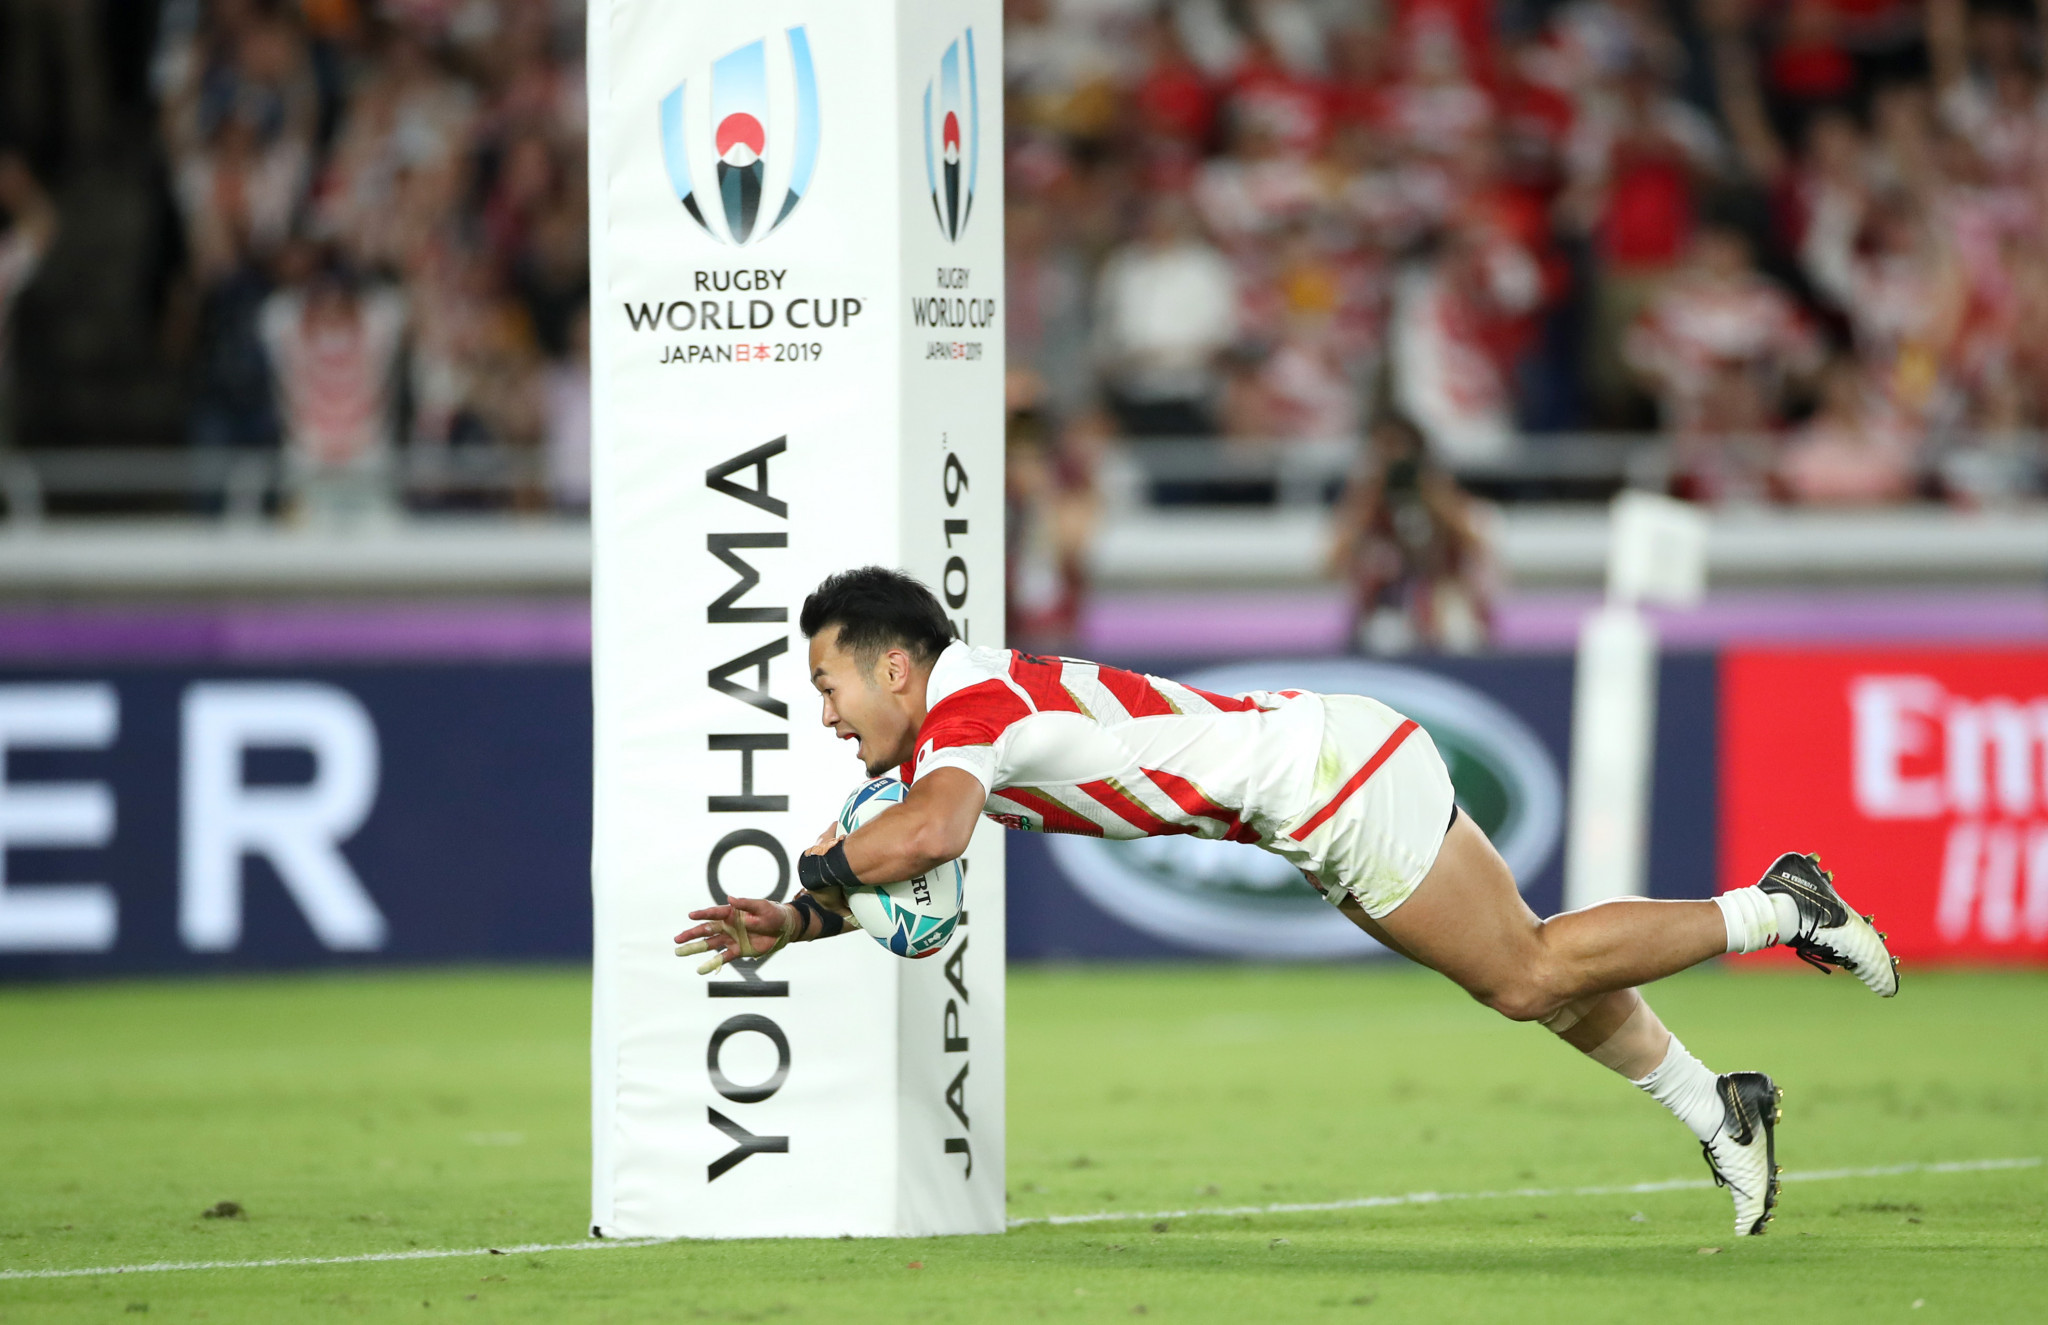 Kenki Fukuoka scored two tries as Japan defeated Scotland 28-21 in Yokohama ©Getty Images